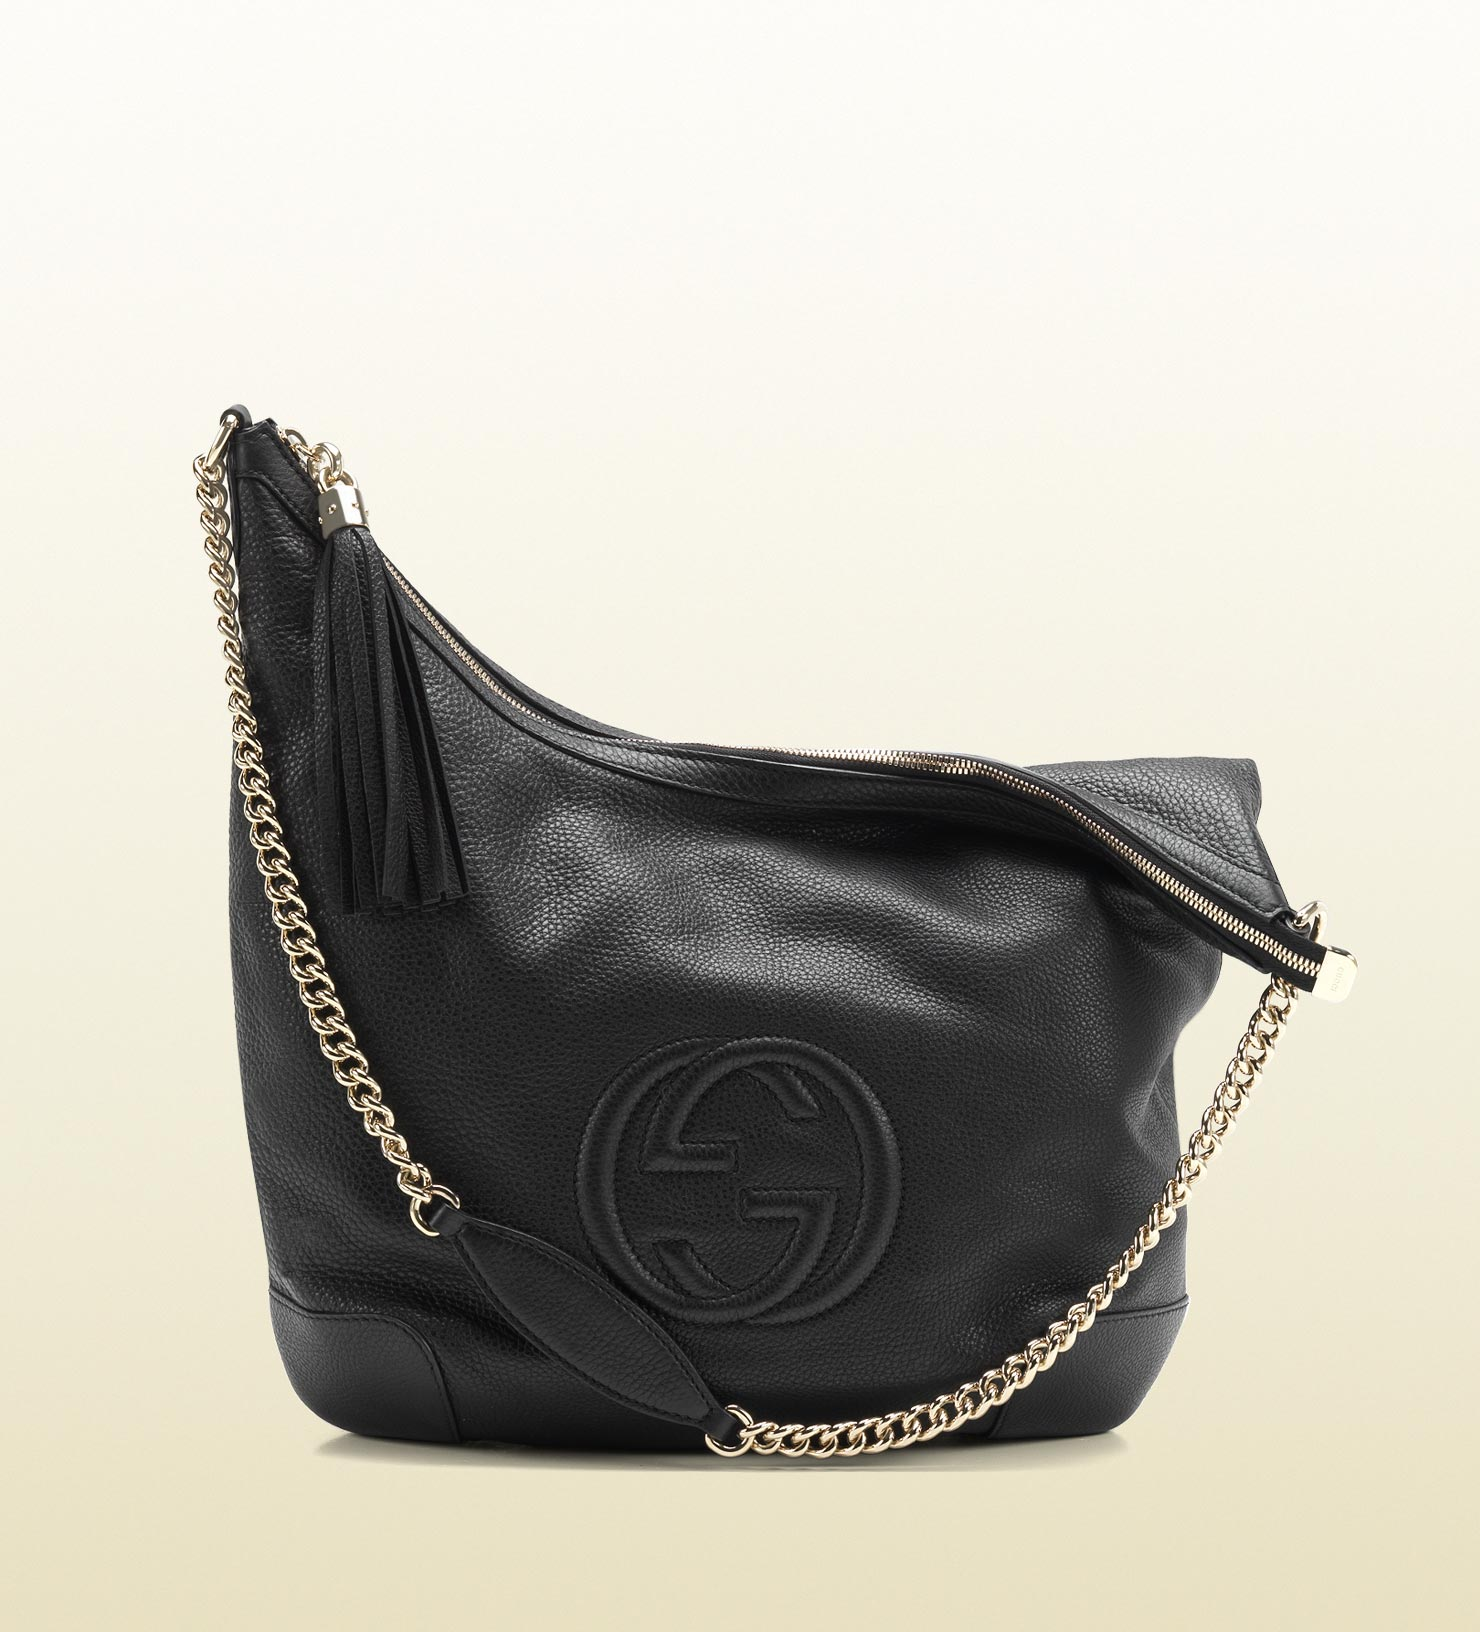 Gucci - soho shoulder bag with chain strap 308981A7M0G1000